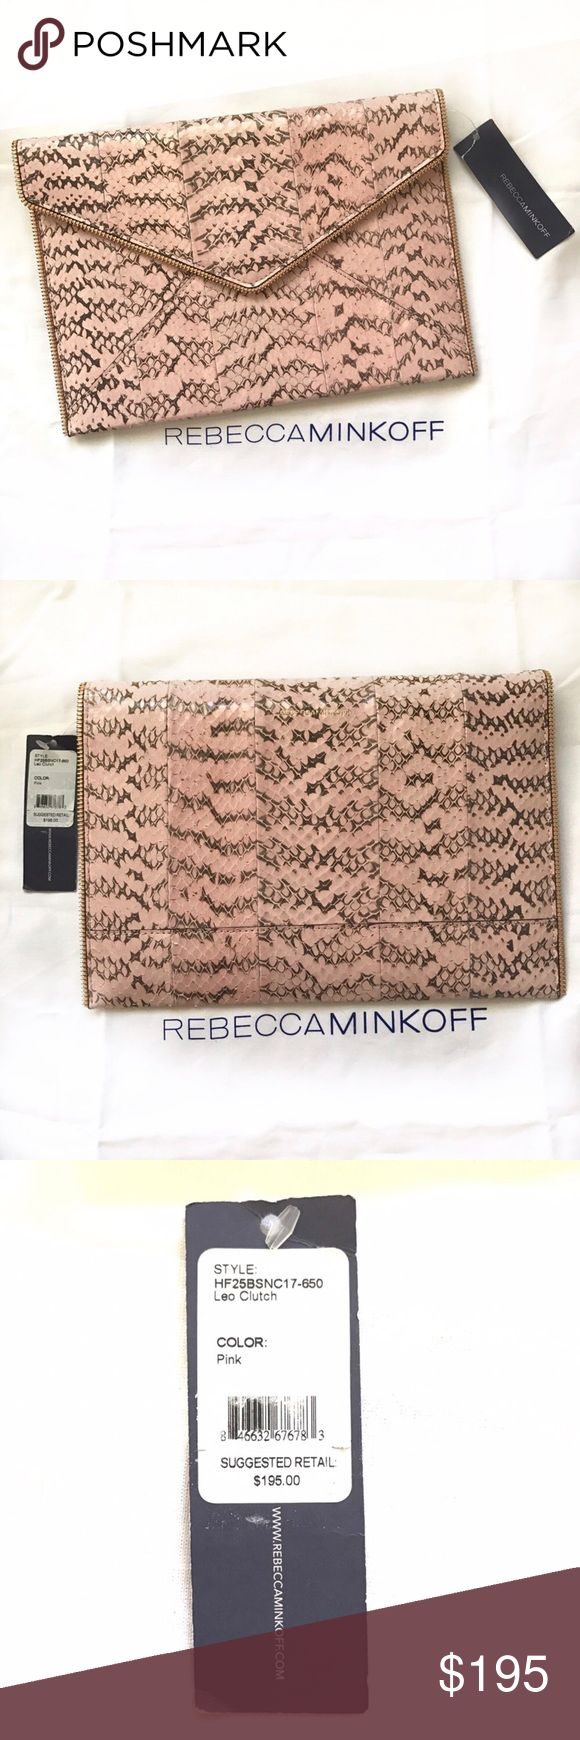 """REBECCA MINKOFF Leo snake pink envelope clutch The Sunday Leo blush pink snake clutch is the perfect sidekick for a night out. It features interior credit card slot so you don't need to bring your wallet out. Comes with tag and dust bag. / size : 11"""" x 8""""  Color: Blush pink snake (close up pics show the color better)  ✉️Envelope Snap closure ✉️Interior slip pocket ✉️Custom Gold Hardware ✉️Exclusive lining ✉️100% Embossed Leather Rebecca Minkoff Bags Clutches & Wristlets"""